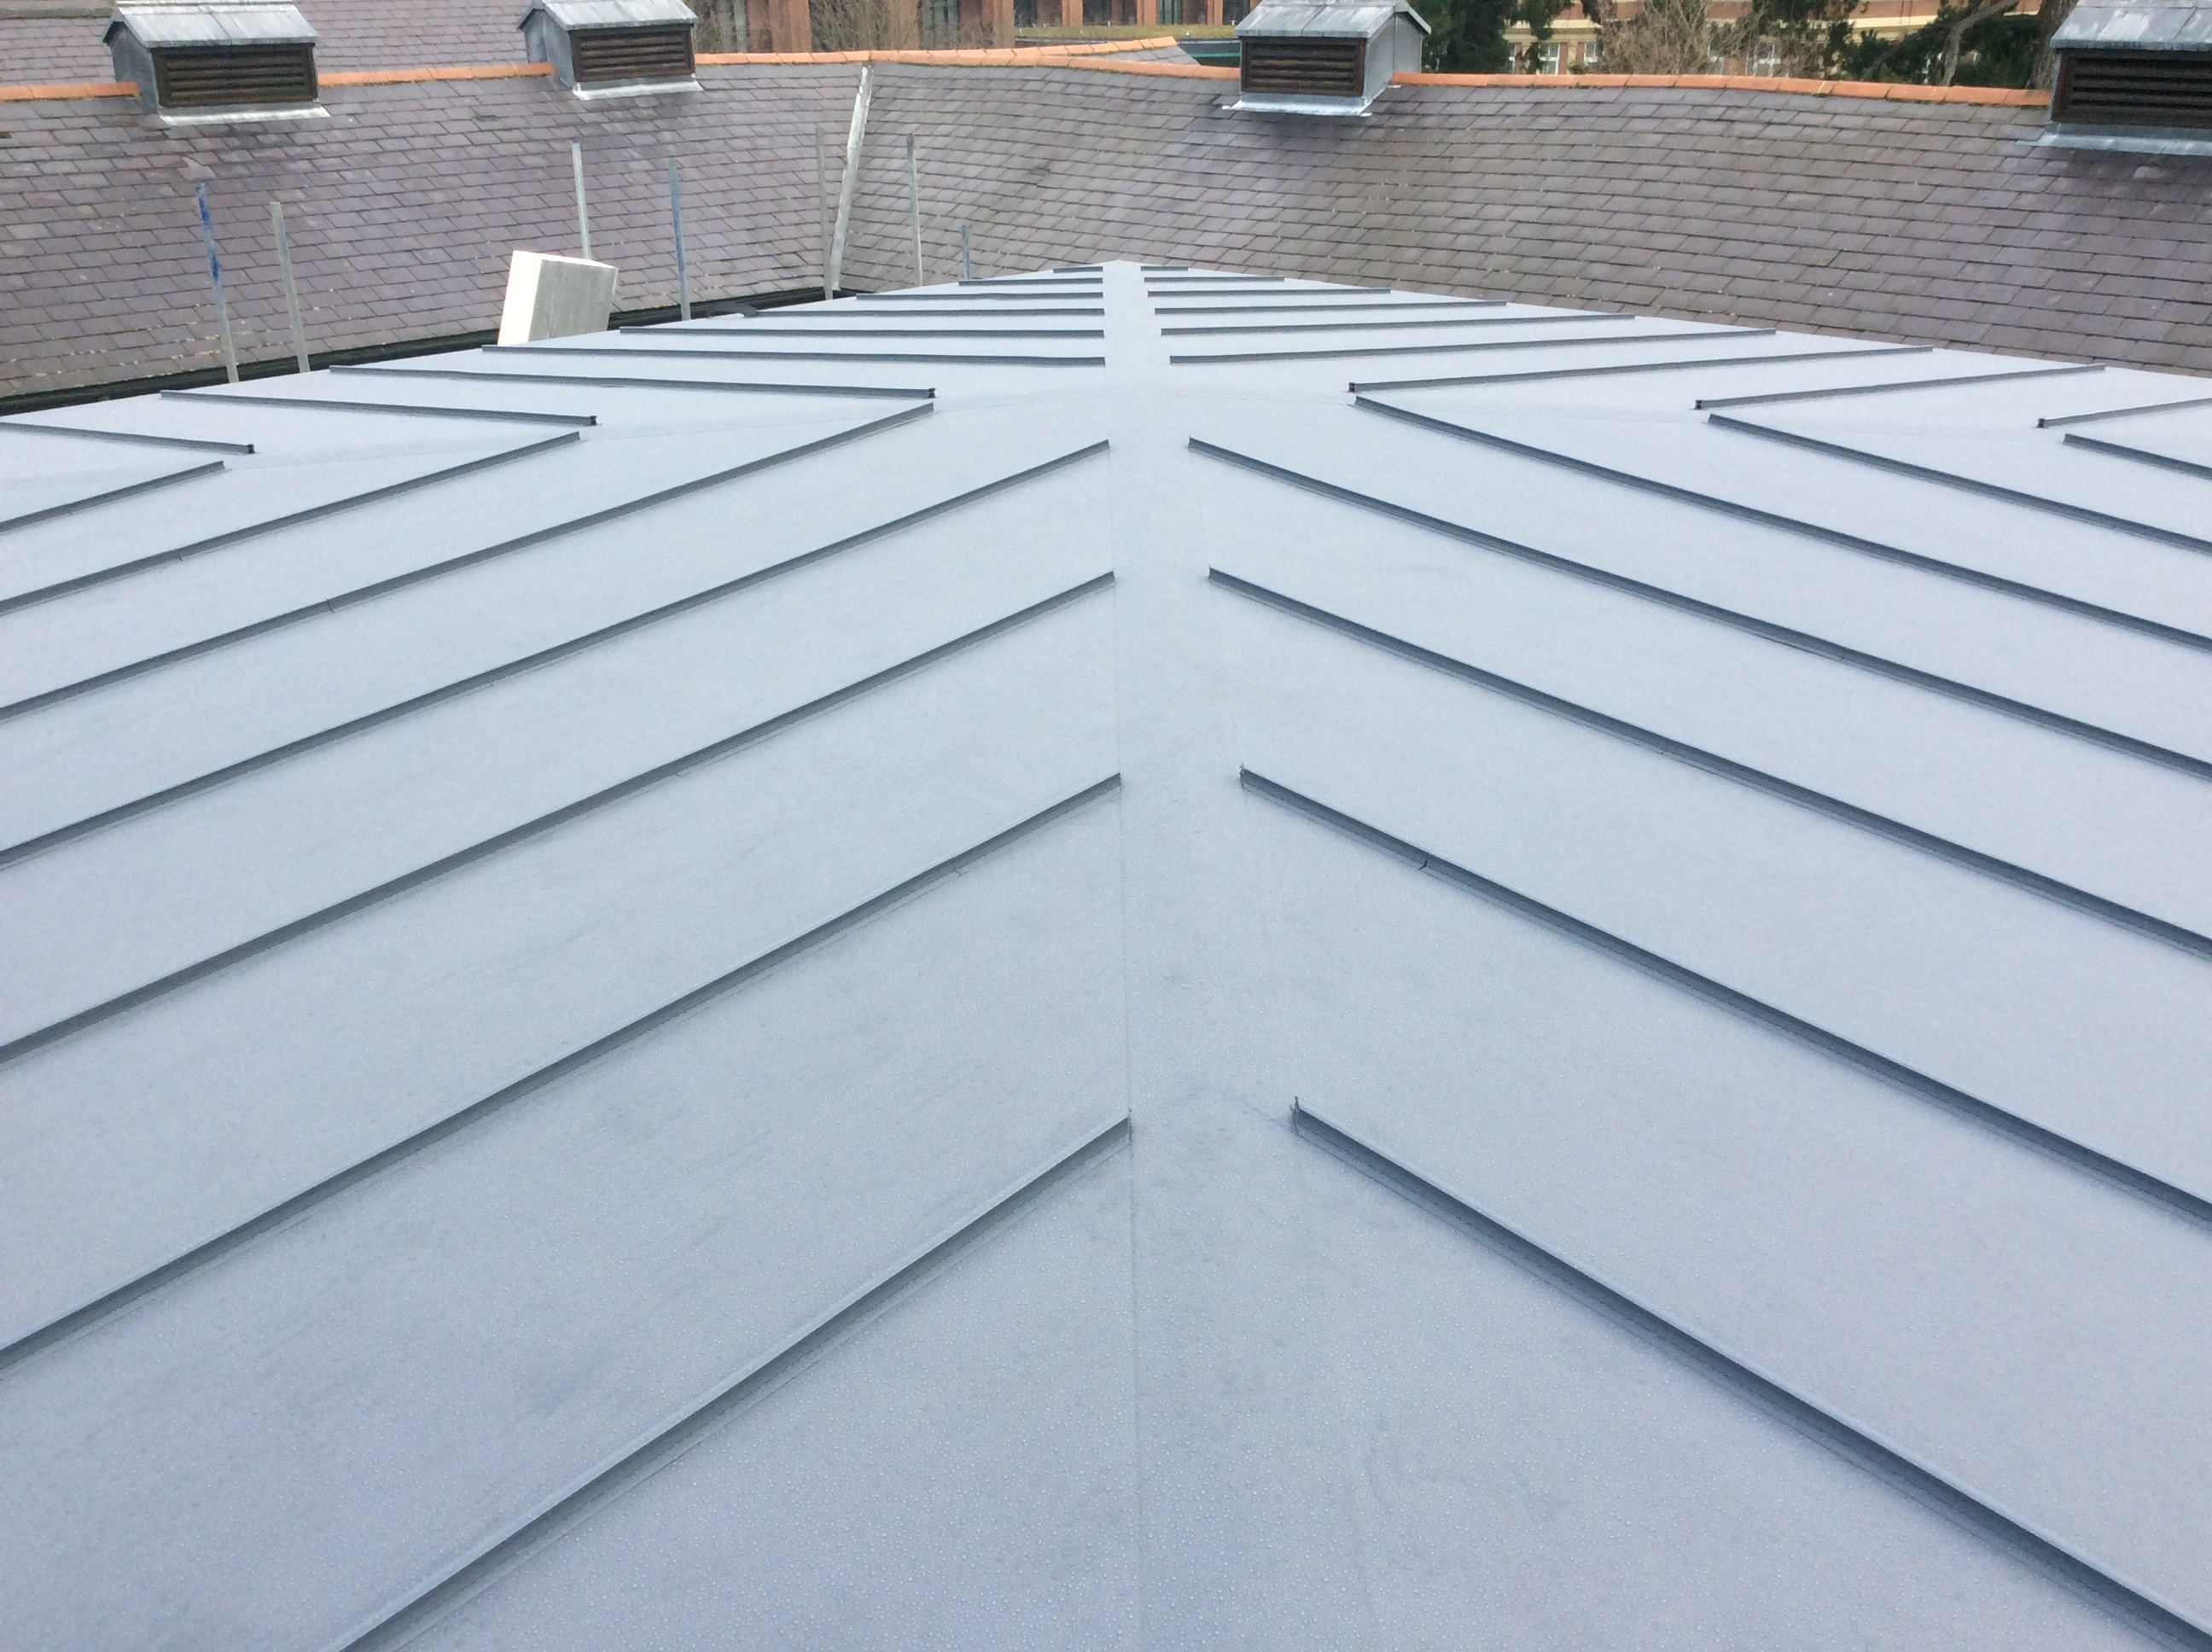 FINAL INSPECTION FLAT ROOFING